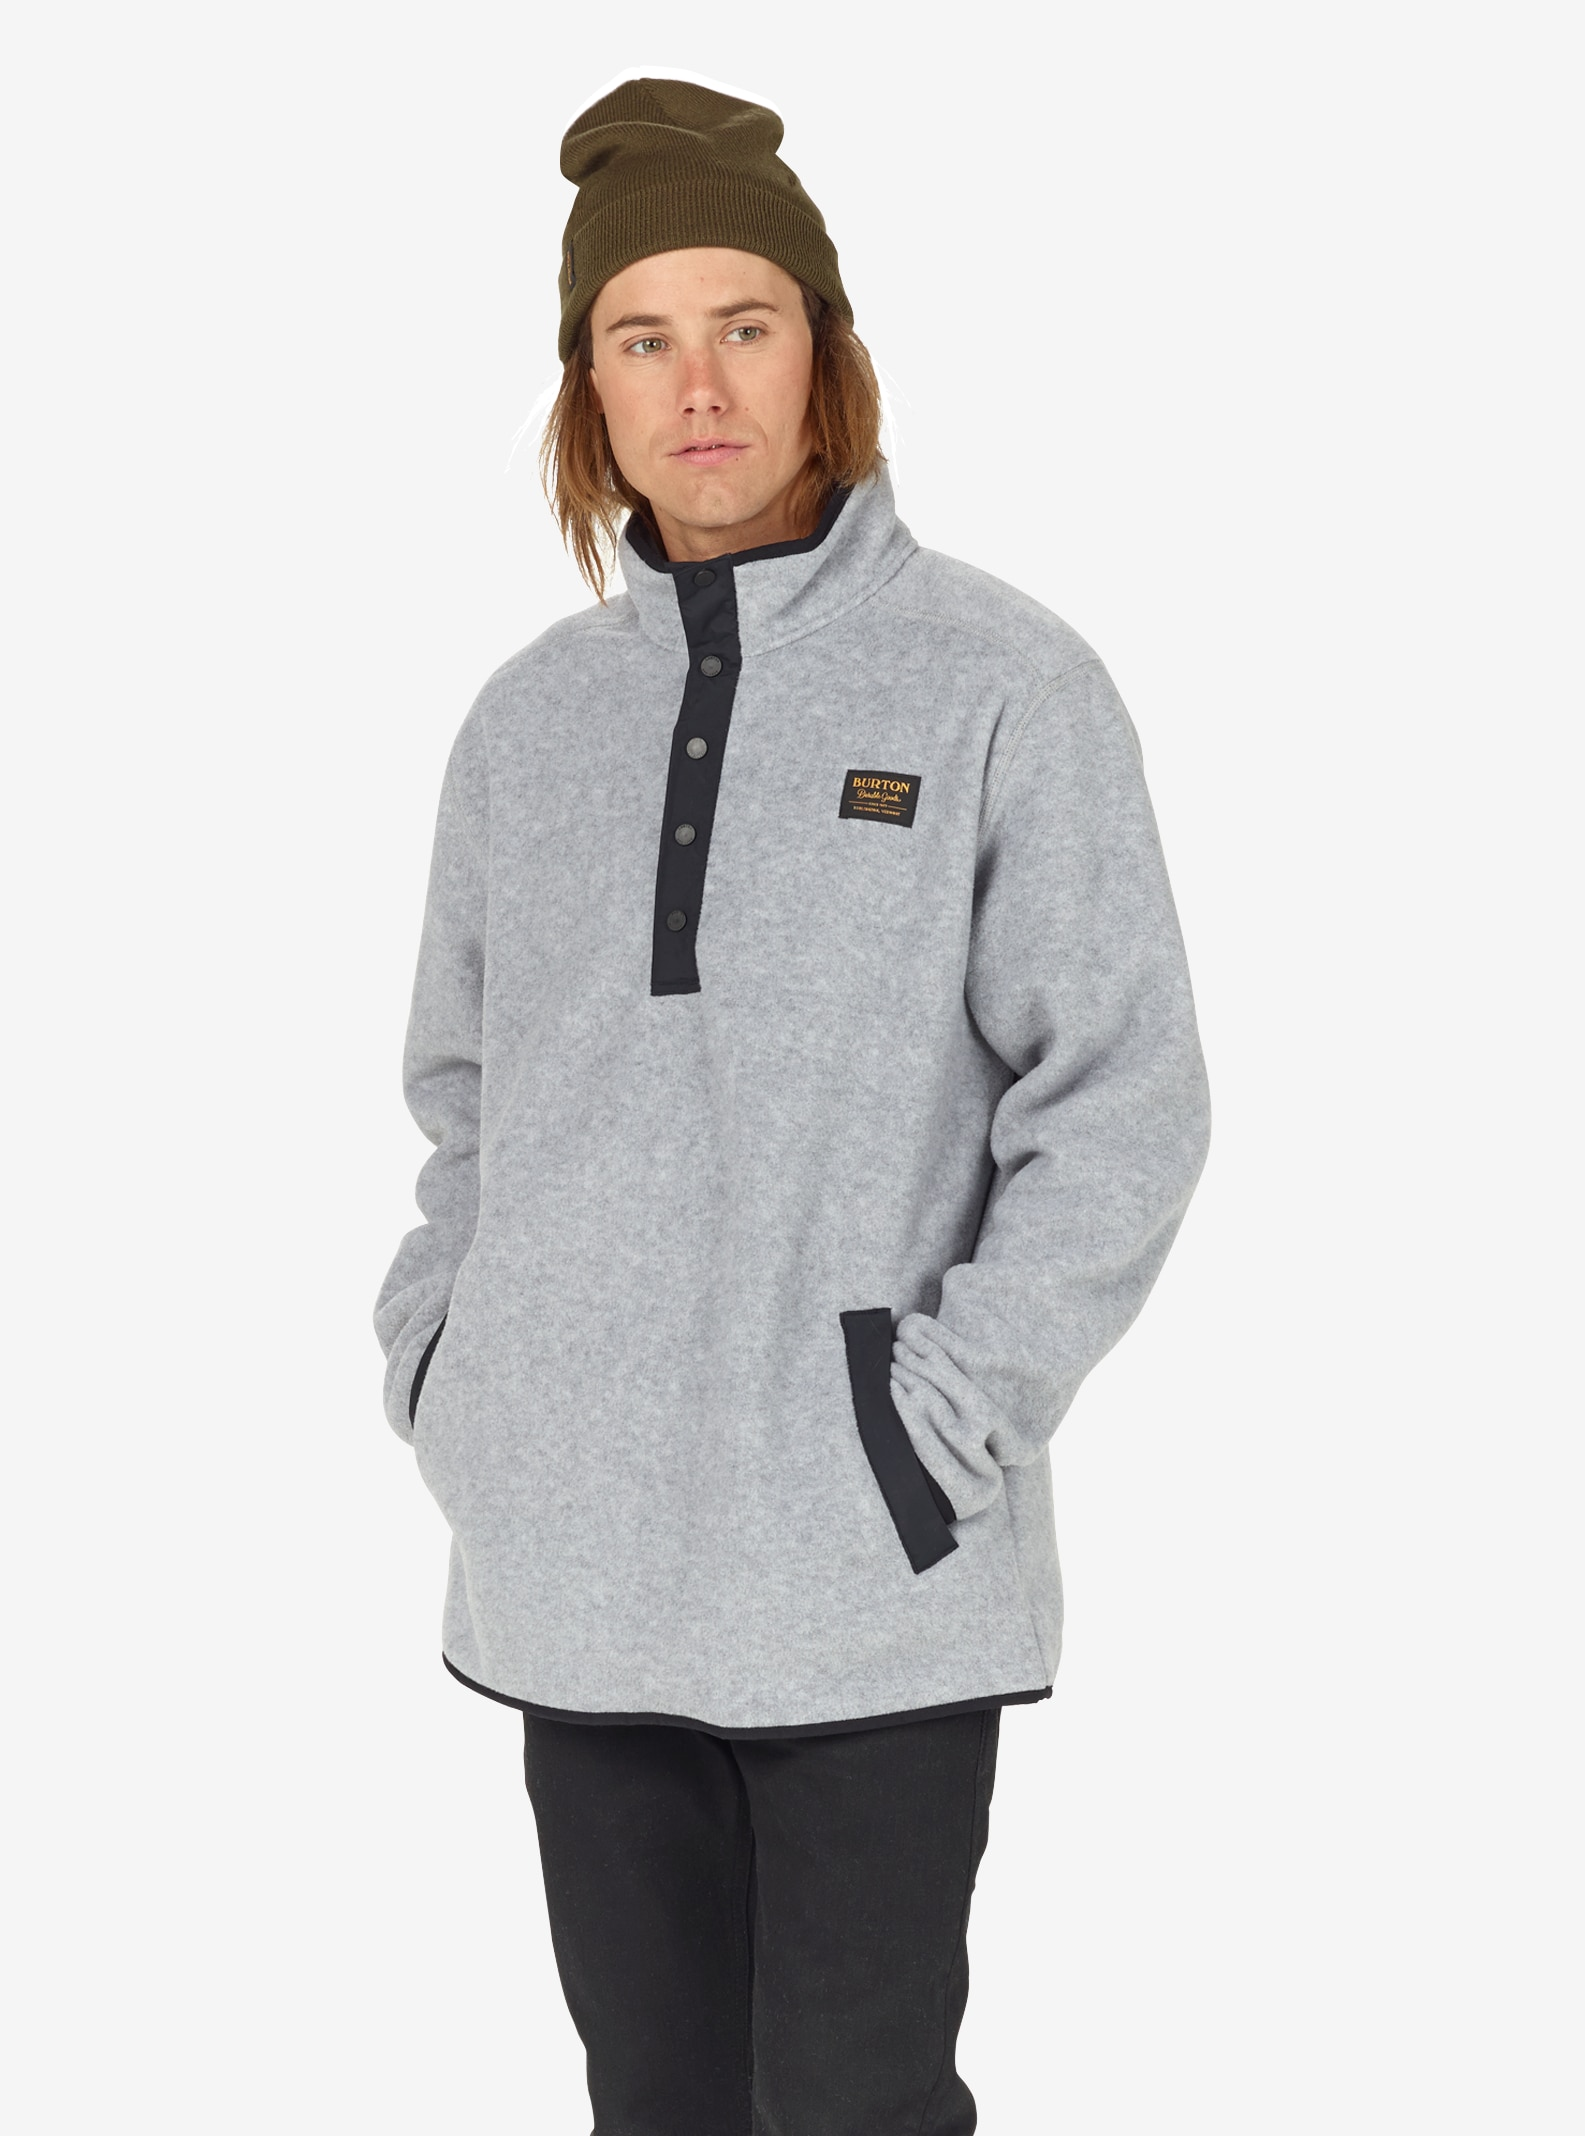 Men's Burton Hearth Fleece Anorak shown in Shade Heather